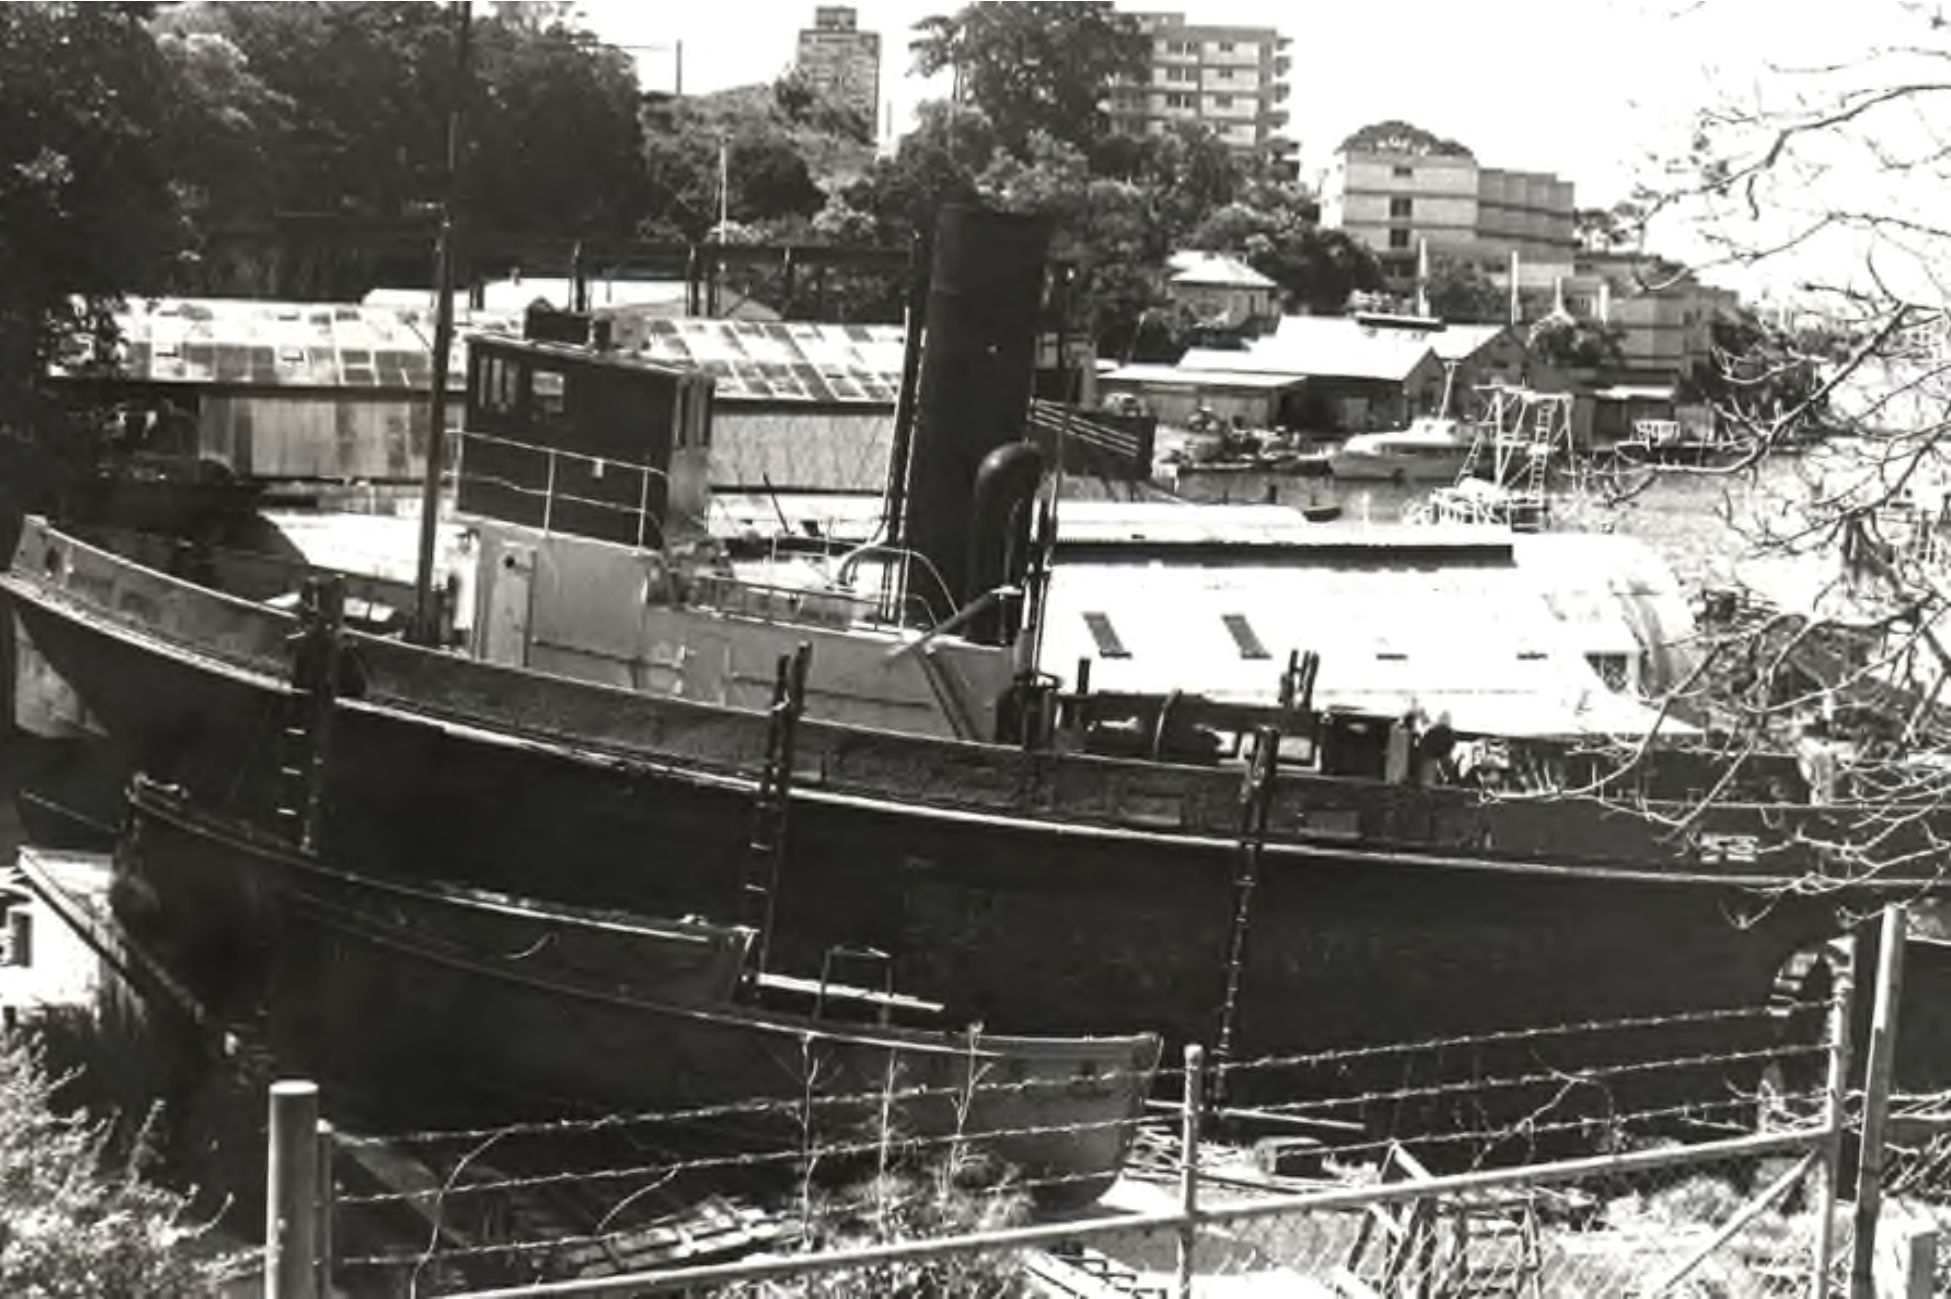 Wattle on the slip at Berry's Bay 1978, Graeme Andrews Collection